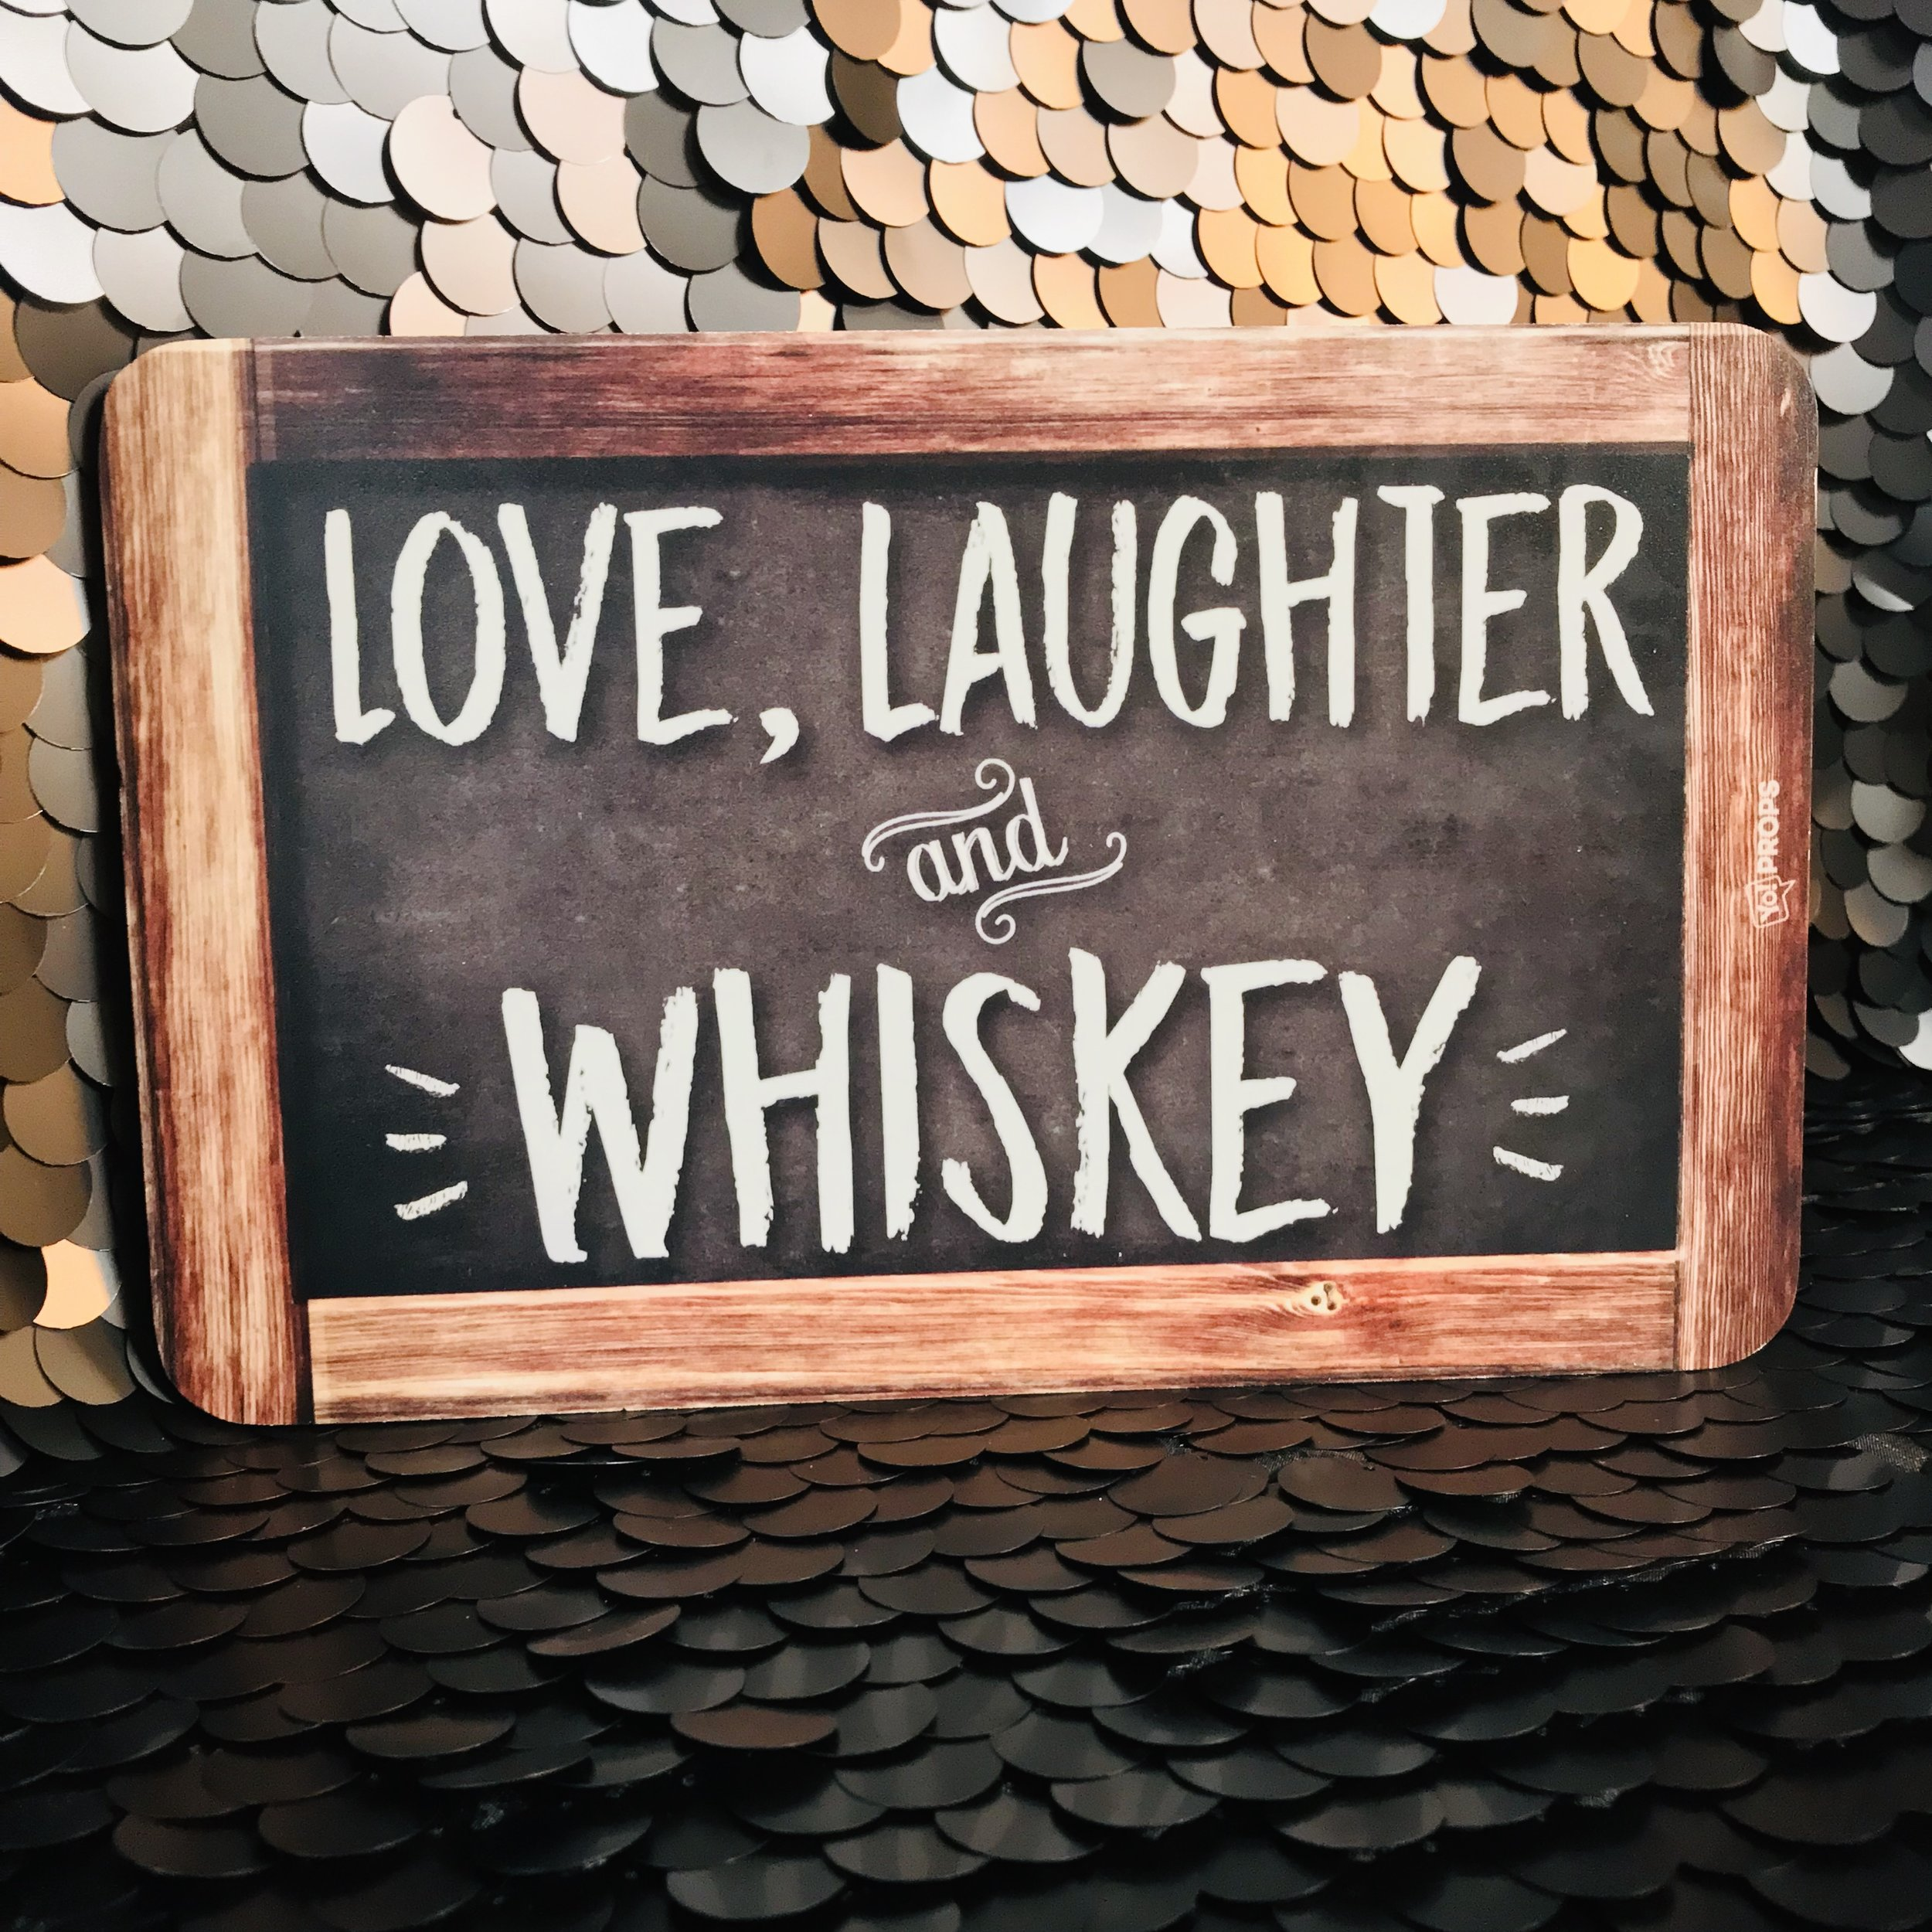 Love laughter whiskey.jpg